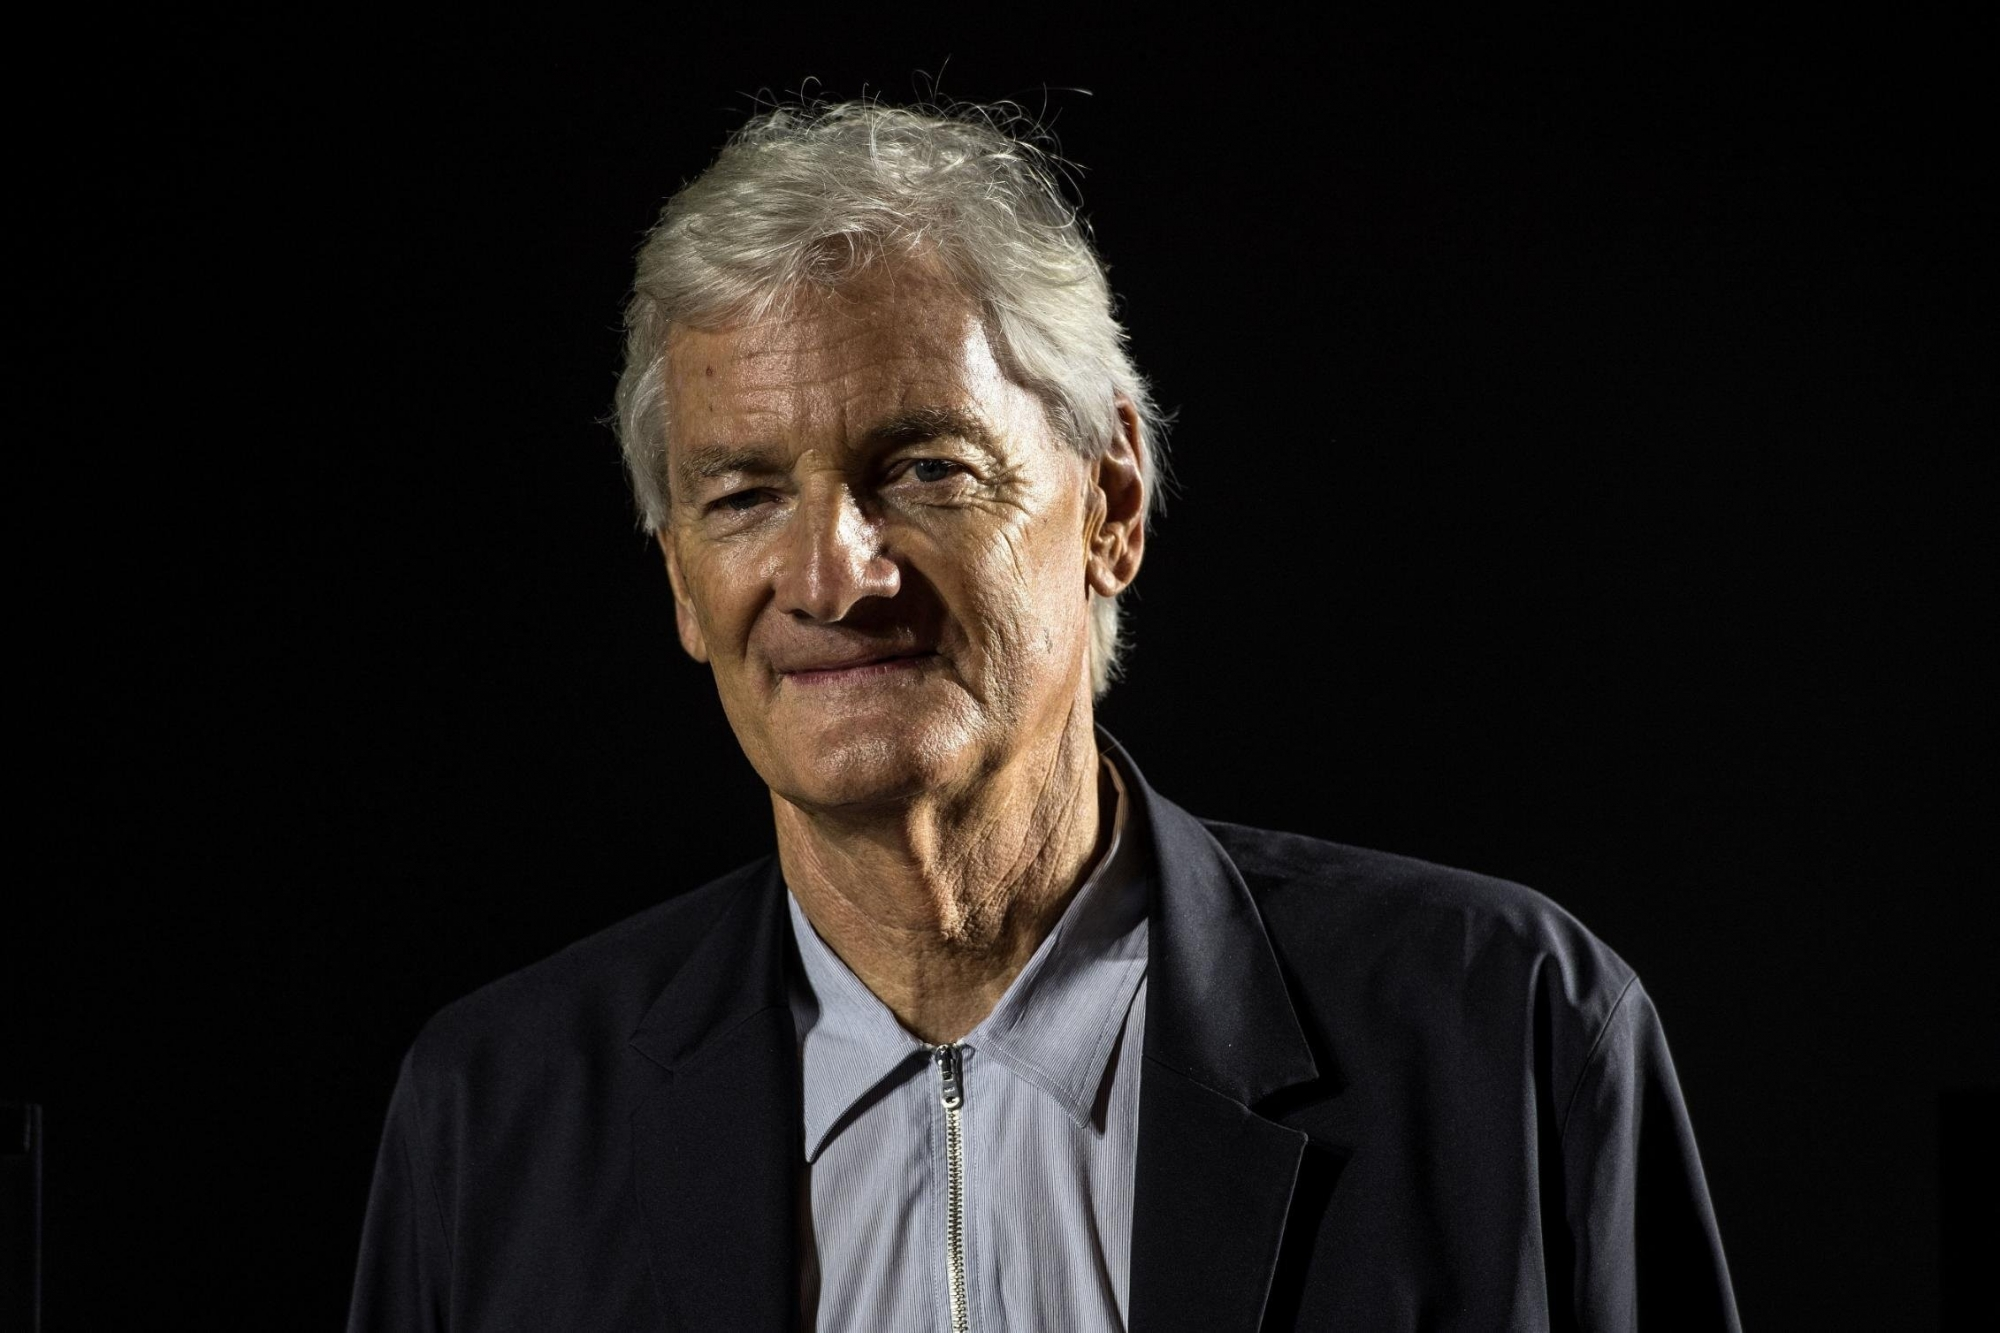 Dyson abandons plans to build electric cars